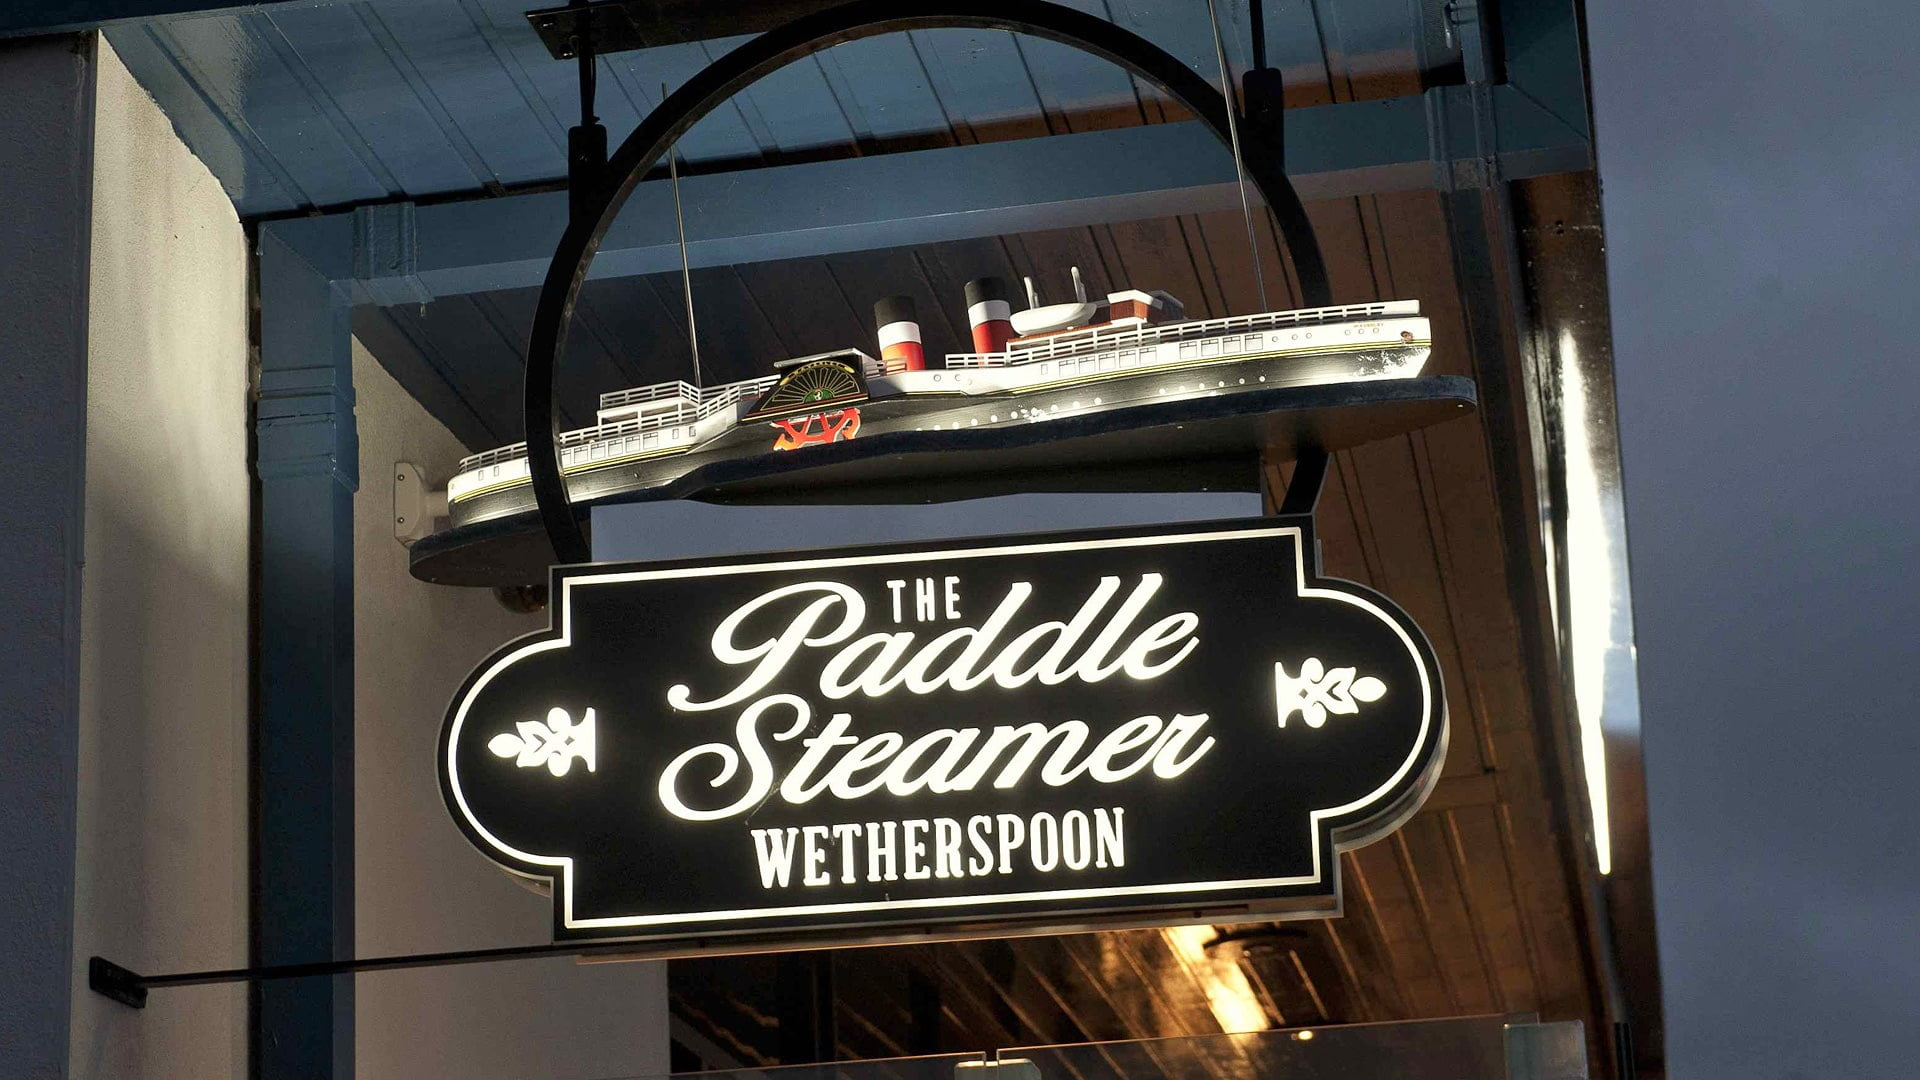 J D Wetherspoon The Paddle Steamer P/H, Largs